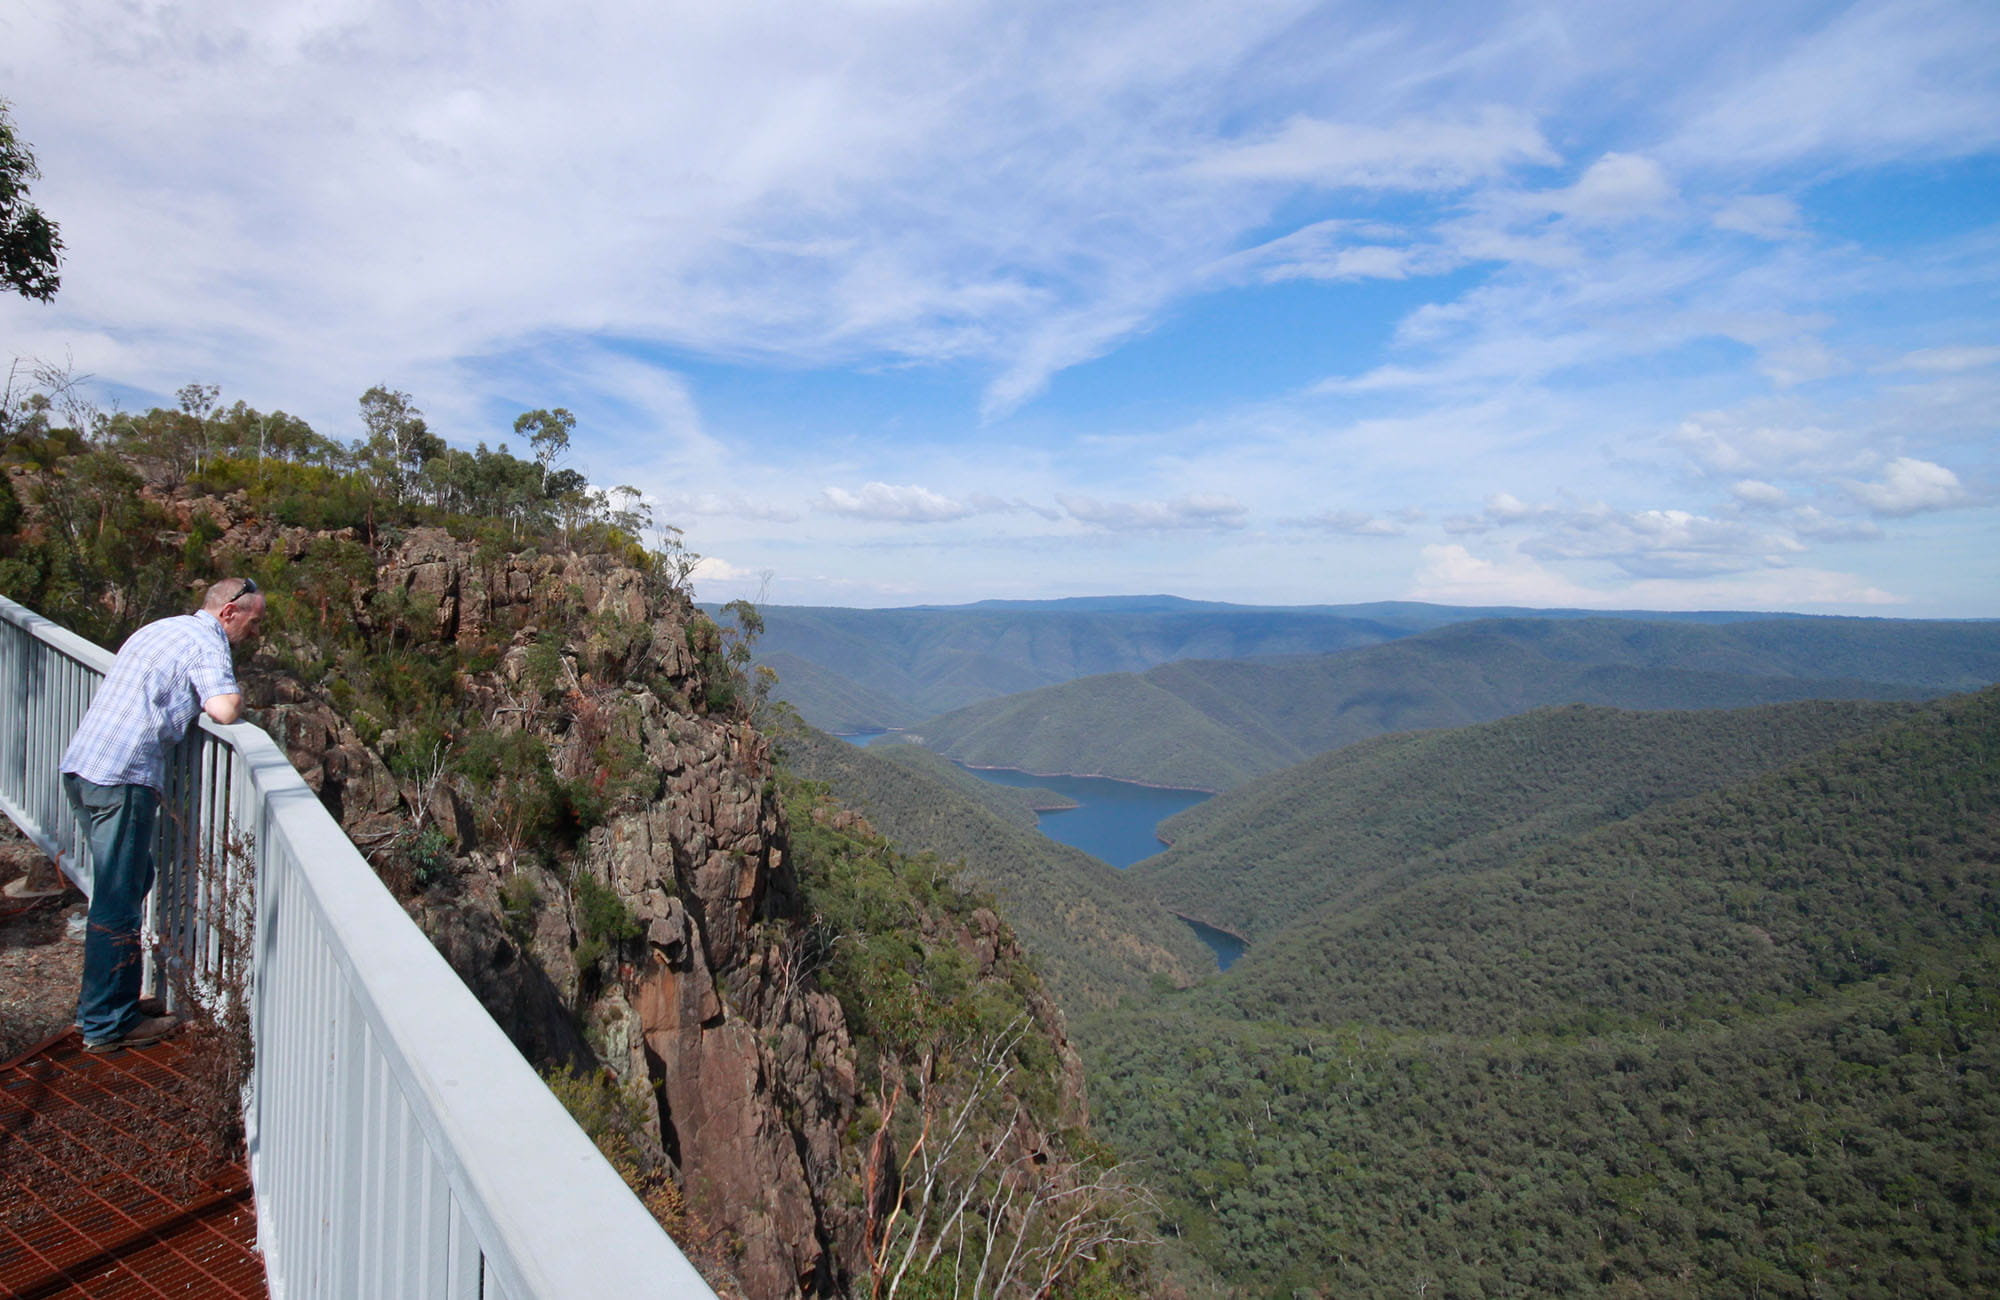 Landers Falls lookout, Kosciuszko National Park. Photo: Elinor Sheargold